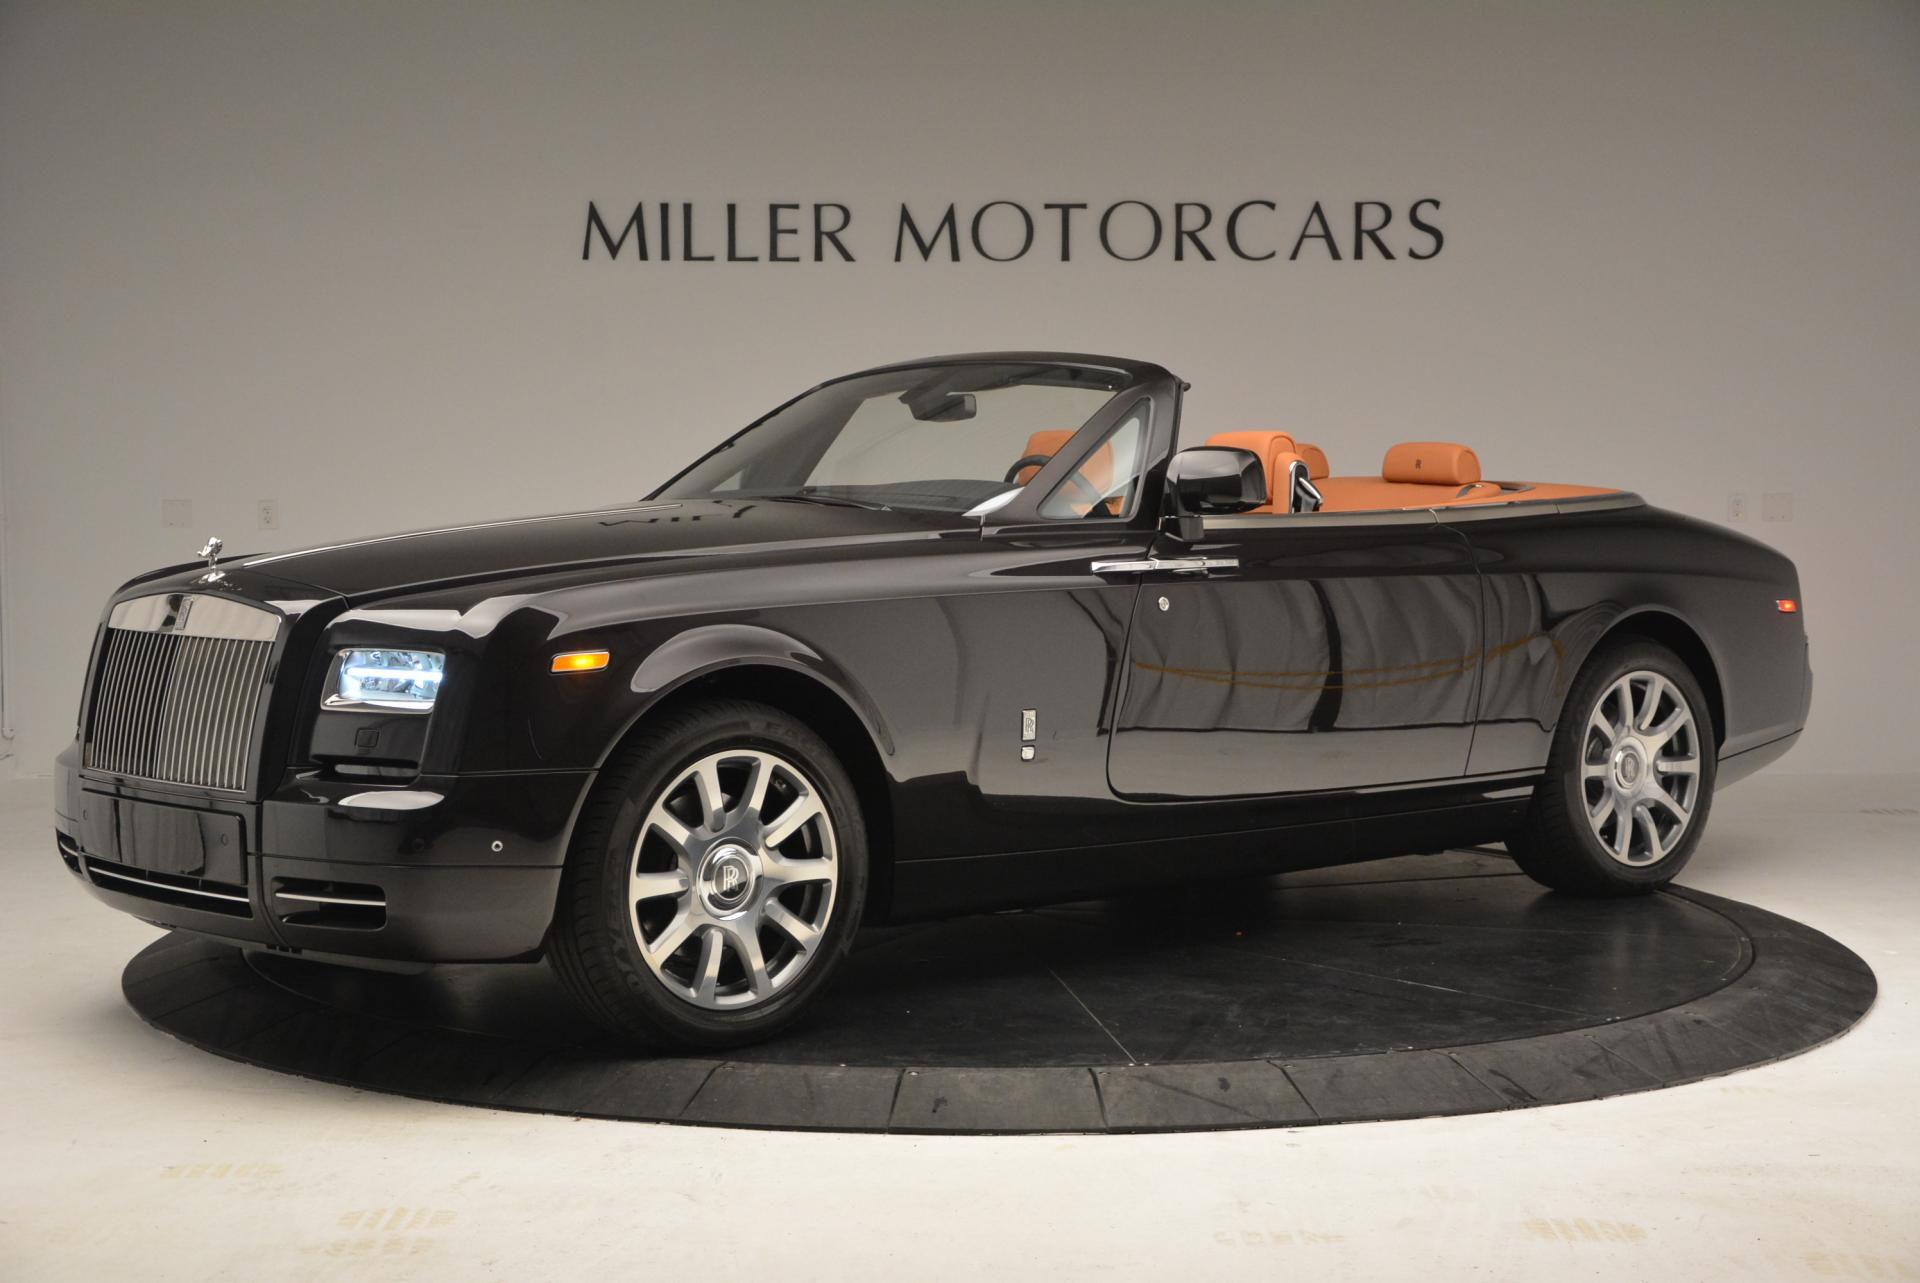 New 2016 Rolls-Royce Phantom Drophead Coupe Bespoke For Sale In Greenwich, CT 208_p2